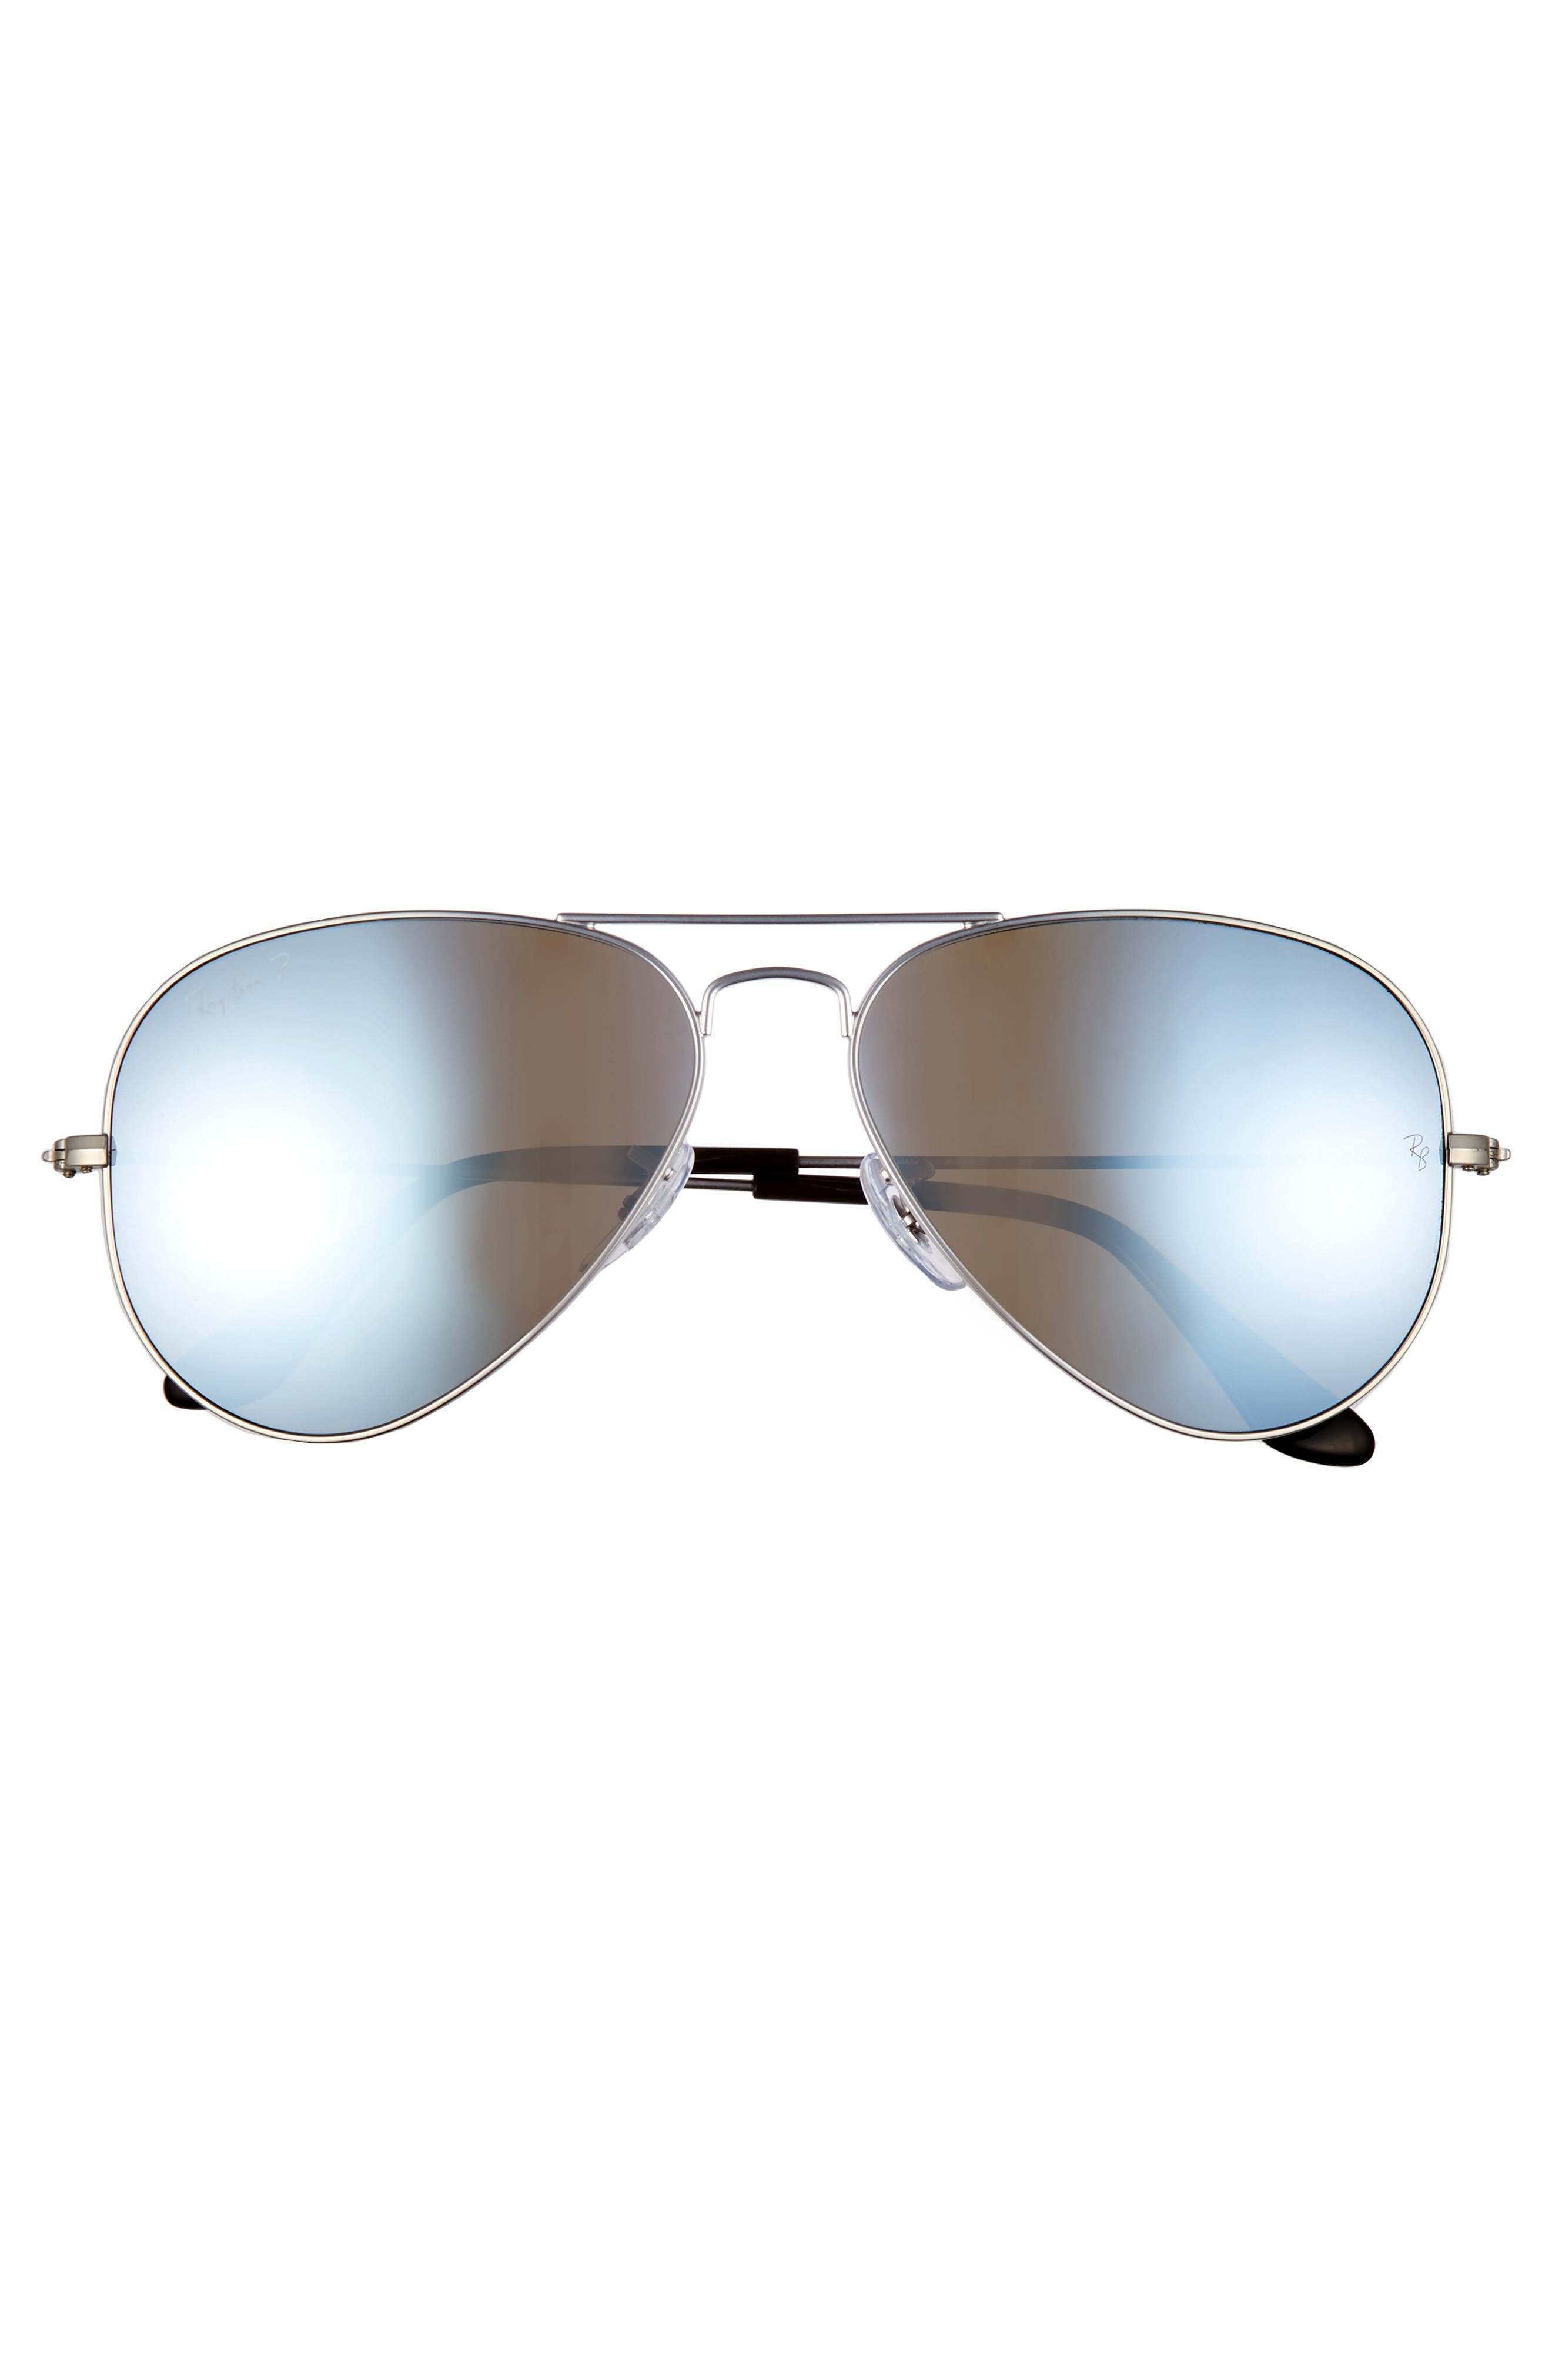 Standard Icons 58mm Mirrored Polarized Aviator Sunglasses,                             Alternate thumbnail 3, color,                             SILVER/ SILVER MIRROR